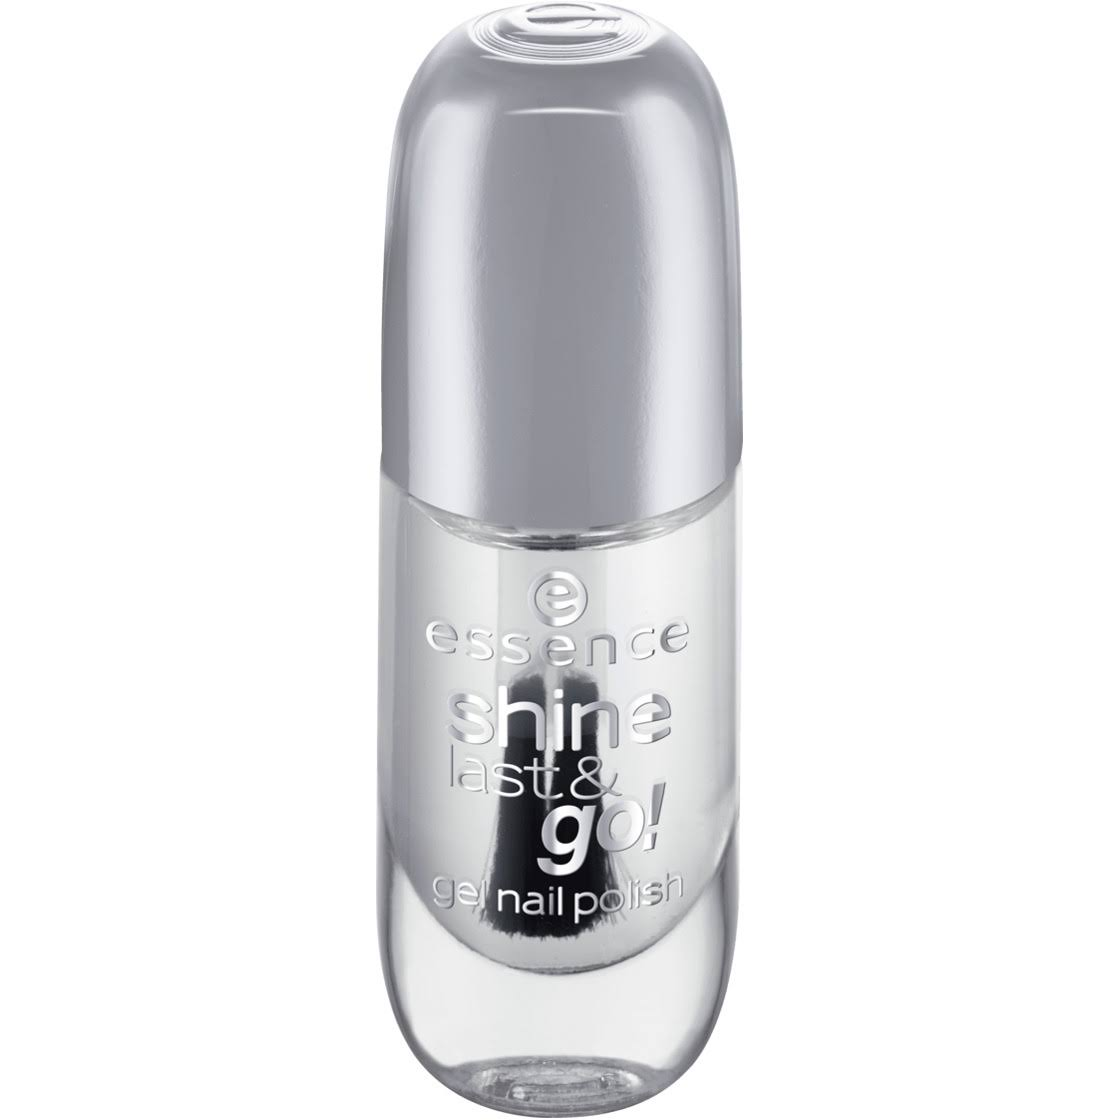 Essence Shine Last and Go! Gel Nail Polish - Absolute Pure, 8ml